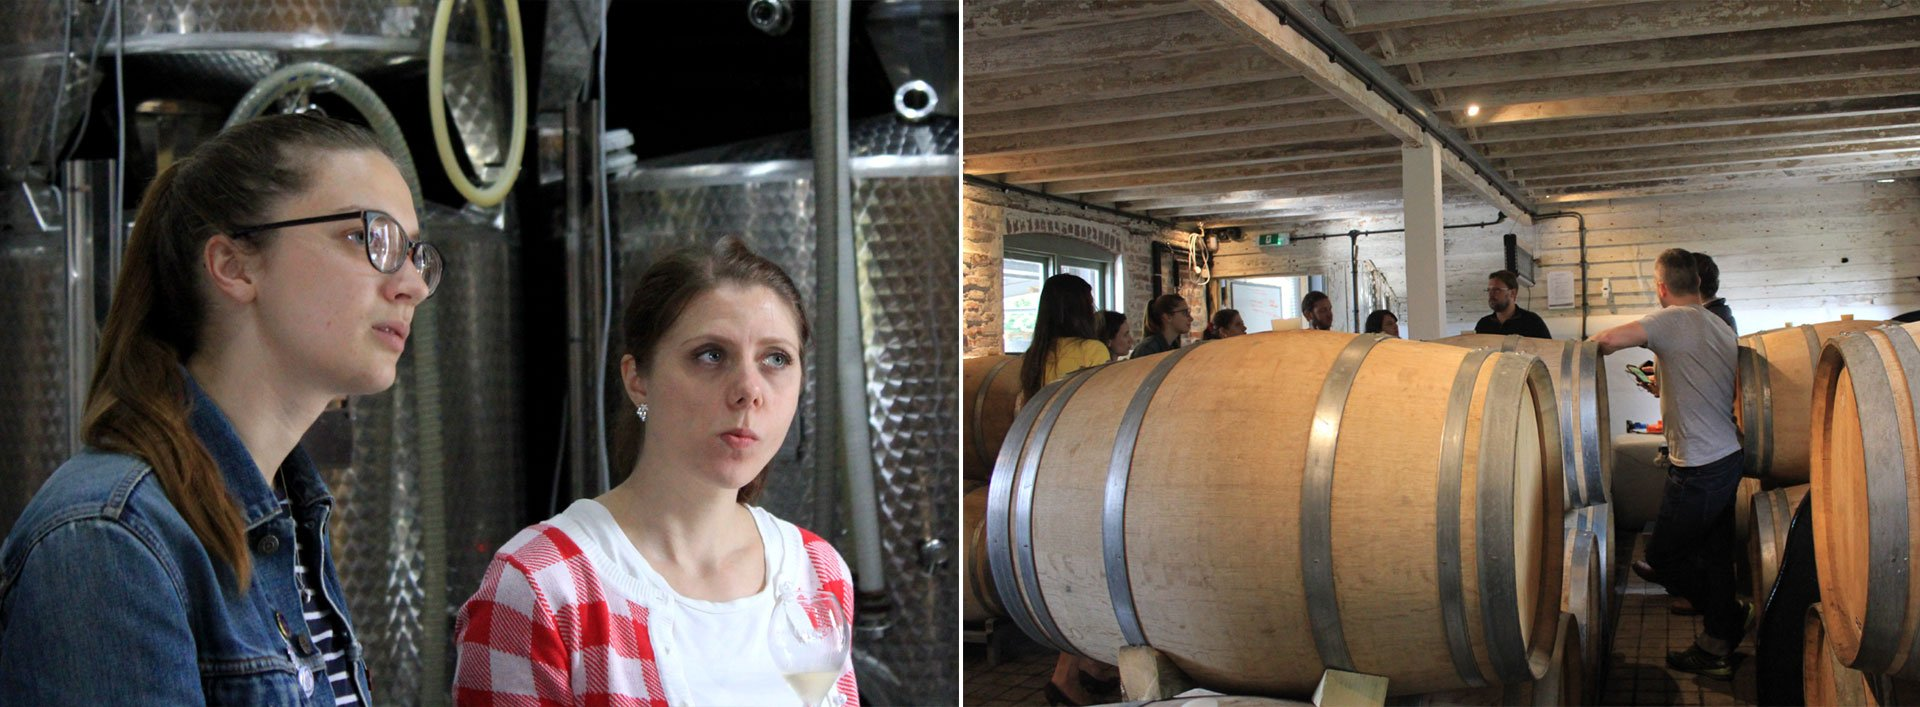 Tasting the 2013 Classic Cuvée in the tank room. Barriques are used to ferment a proportion of the Chardonnay.